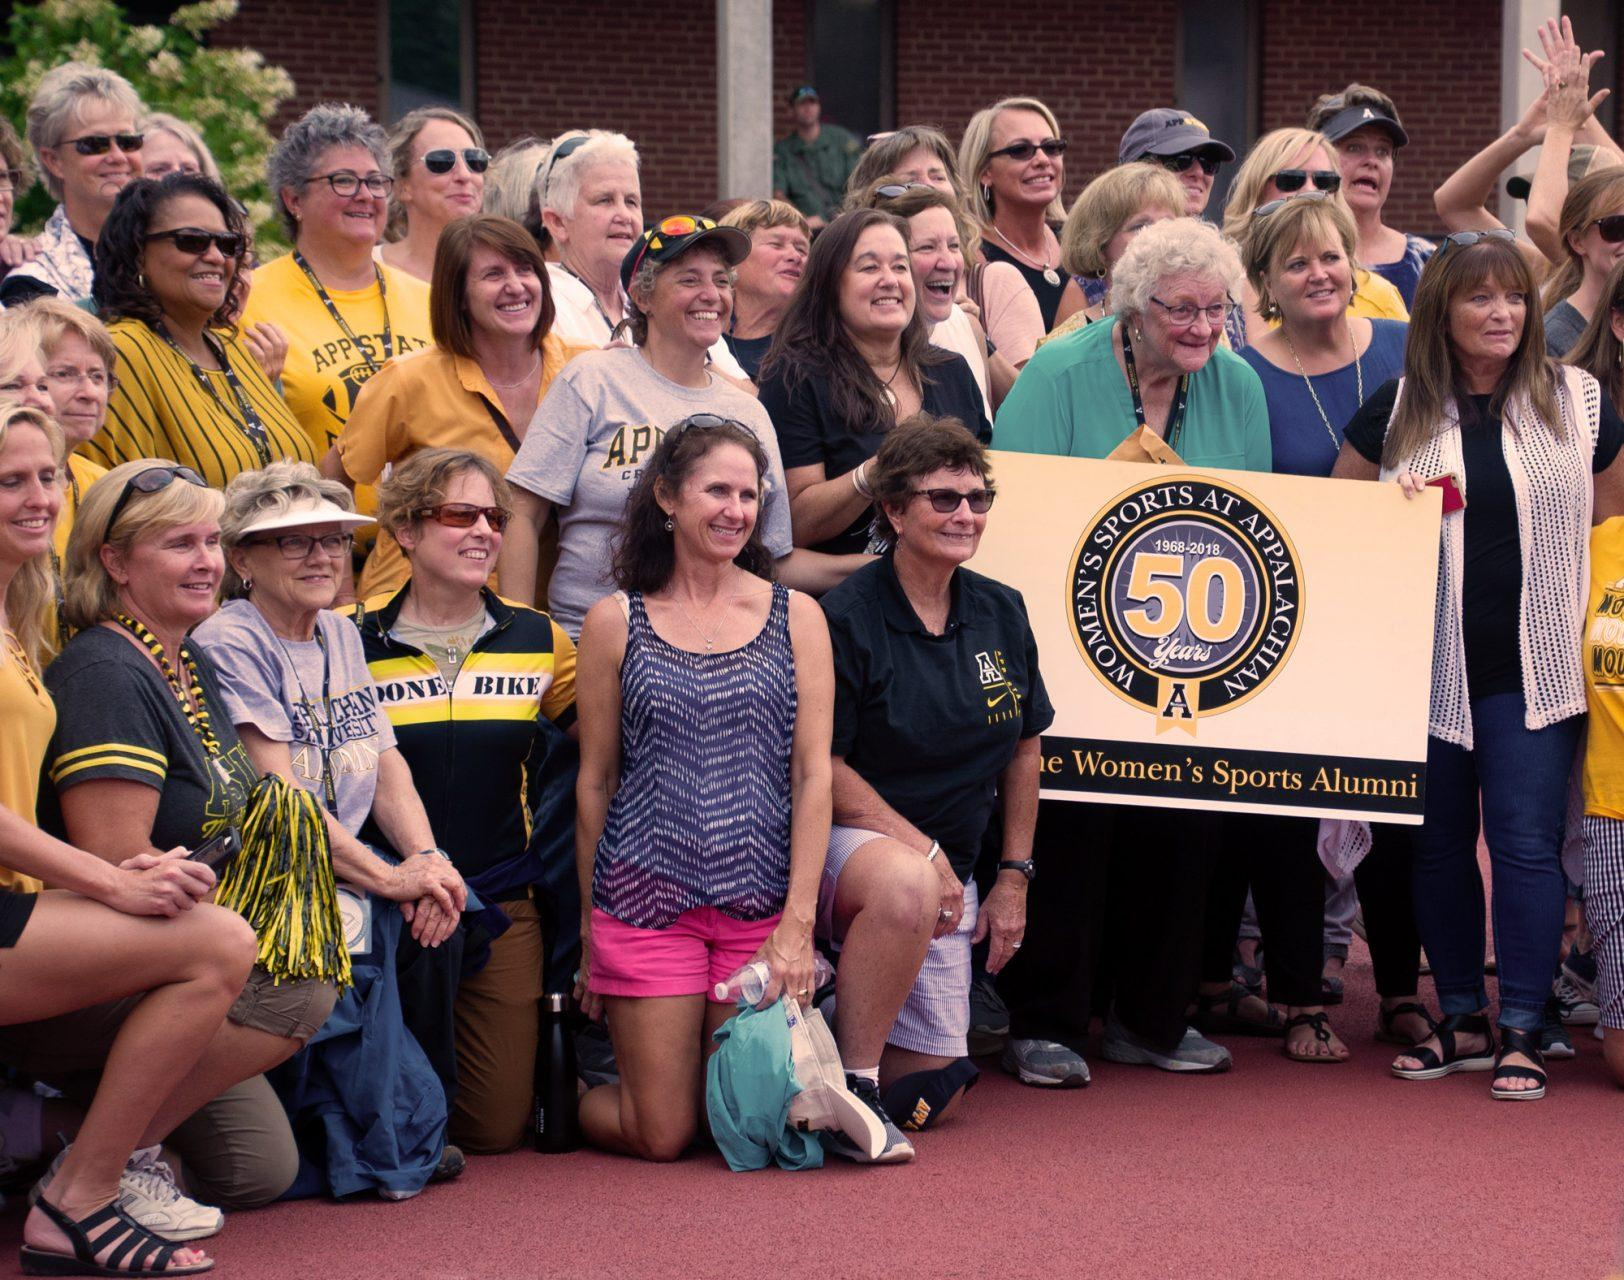 Former+female+athletes+are+celebrated+at+Saturday%27s+football+game+against+Gardner-Webb+in+honor+of+50+years+of+women%27s+sports+at+App+State.